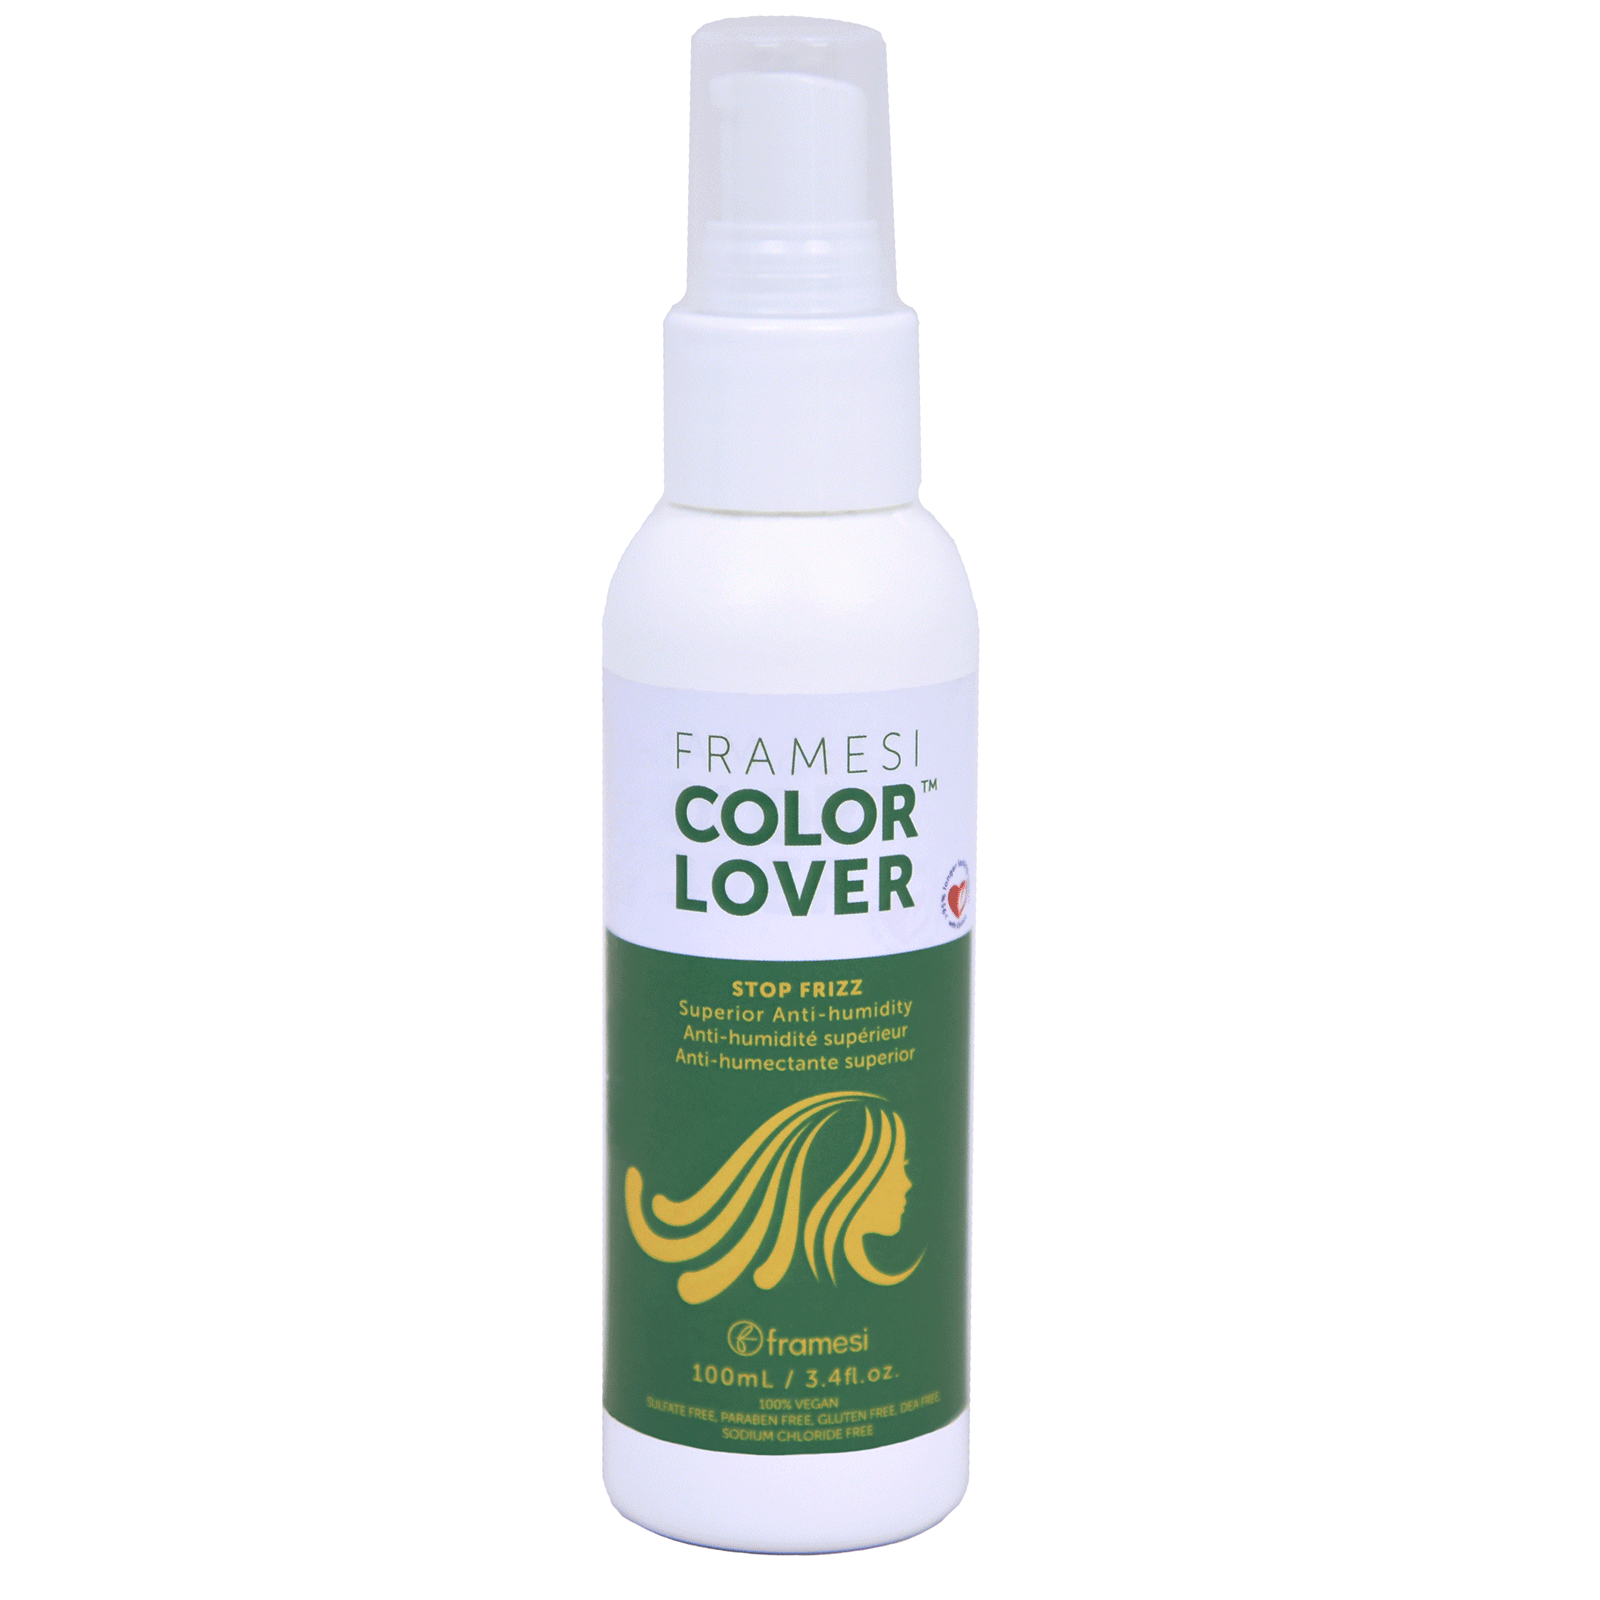 Primary image for Framesi Color Lover Stop Frizz - Superior Anti-Humidity Serum 3.4oz